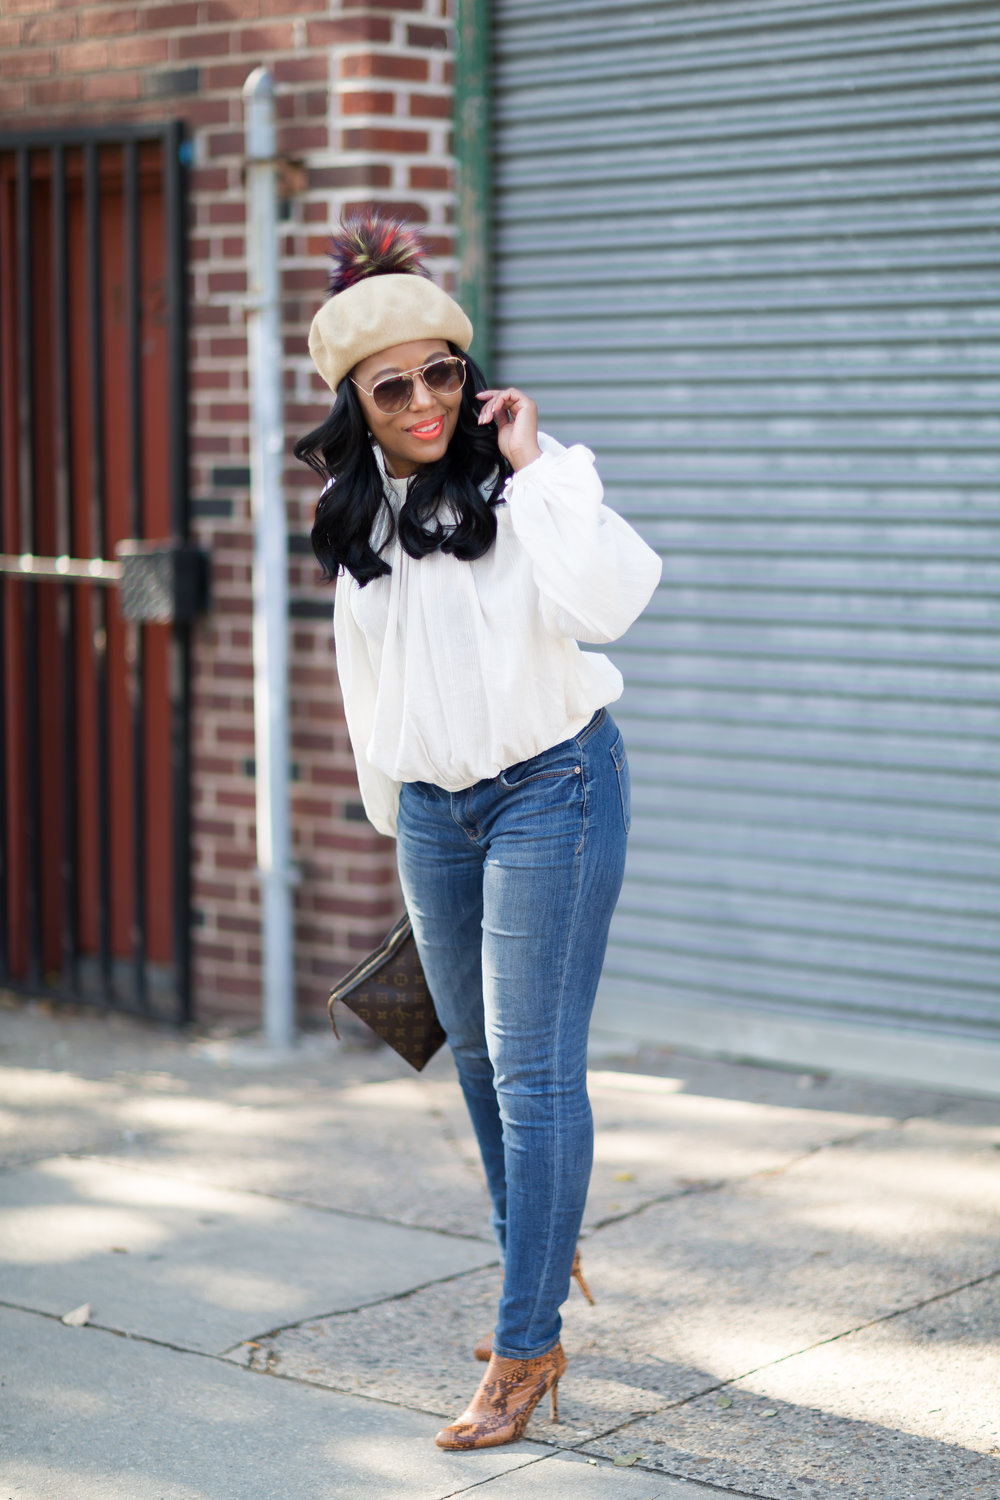 Beret ( Forever 21)  | Blouse  (H&M ) | Jeans (old) | Boots (Zara) Old